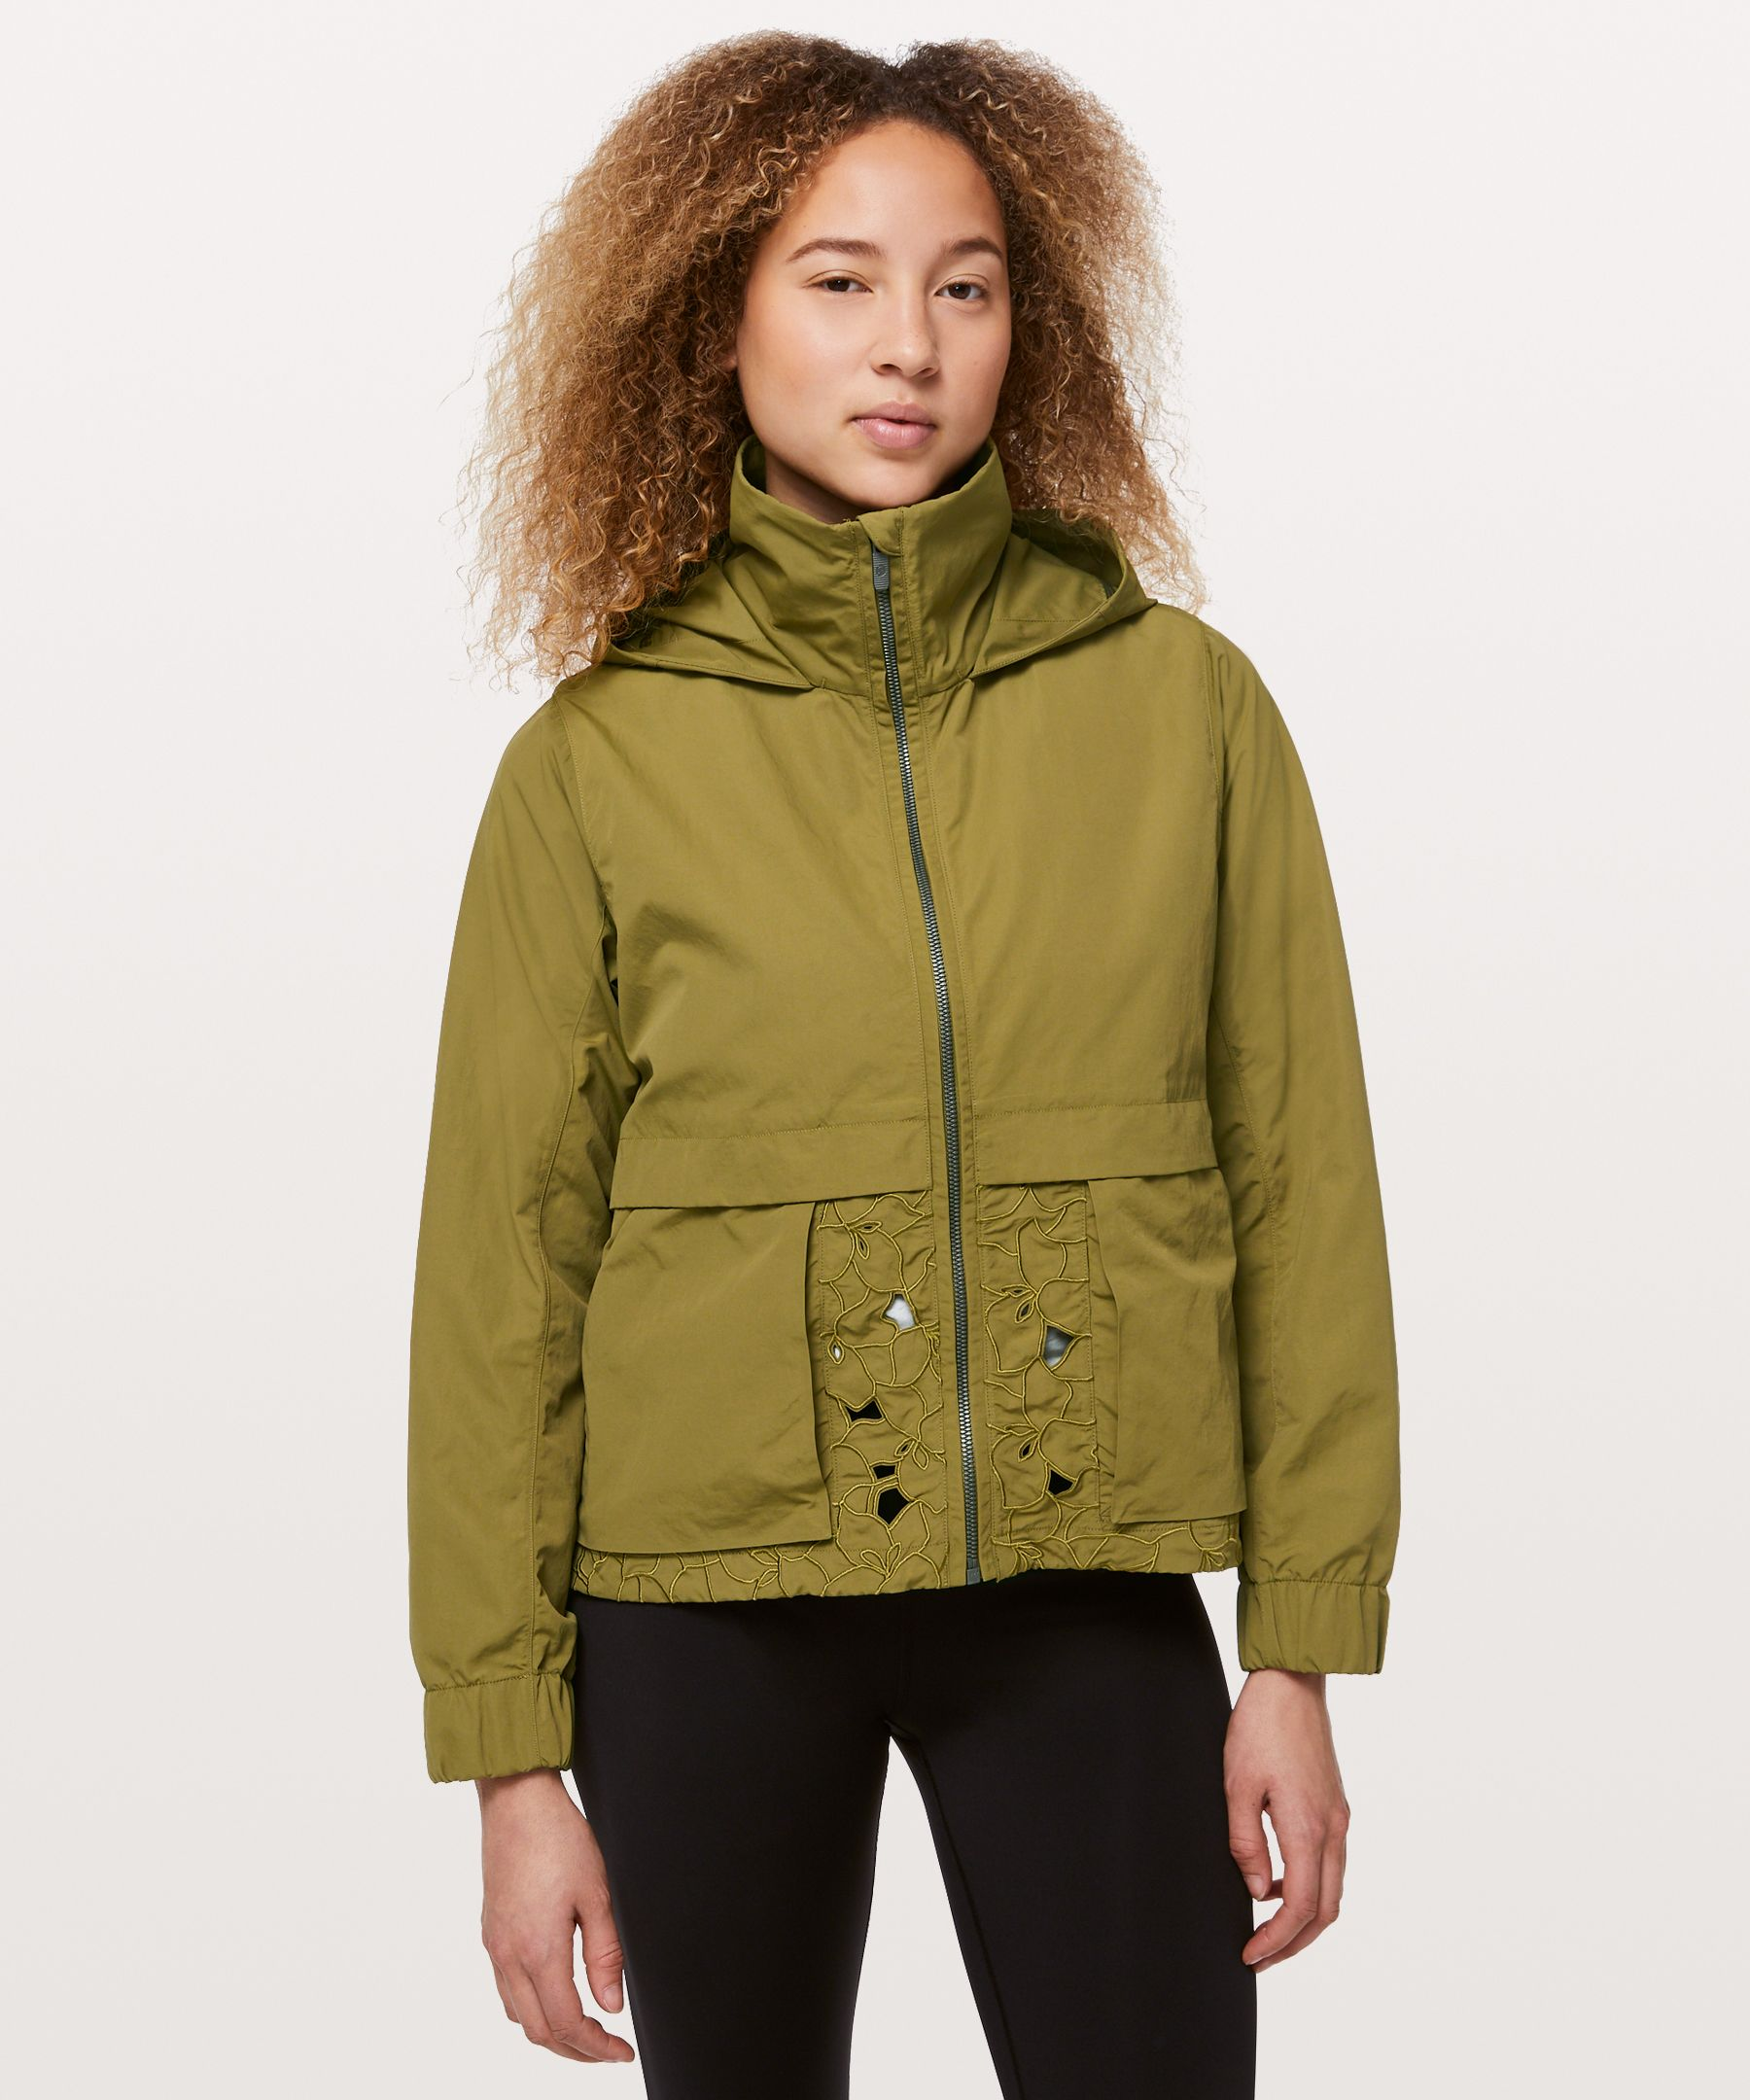 Unexpected panels of crafted  lace strike the balance  between beauty and weather  protection in this ventilated  jacket. A stowable hood and  water-repellent fabric keep it  practical, while the subtle  play of textures make an  effortless statement.